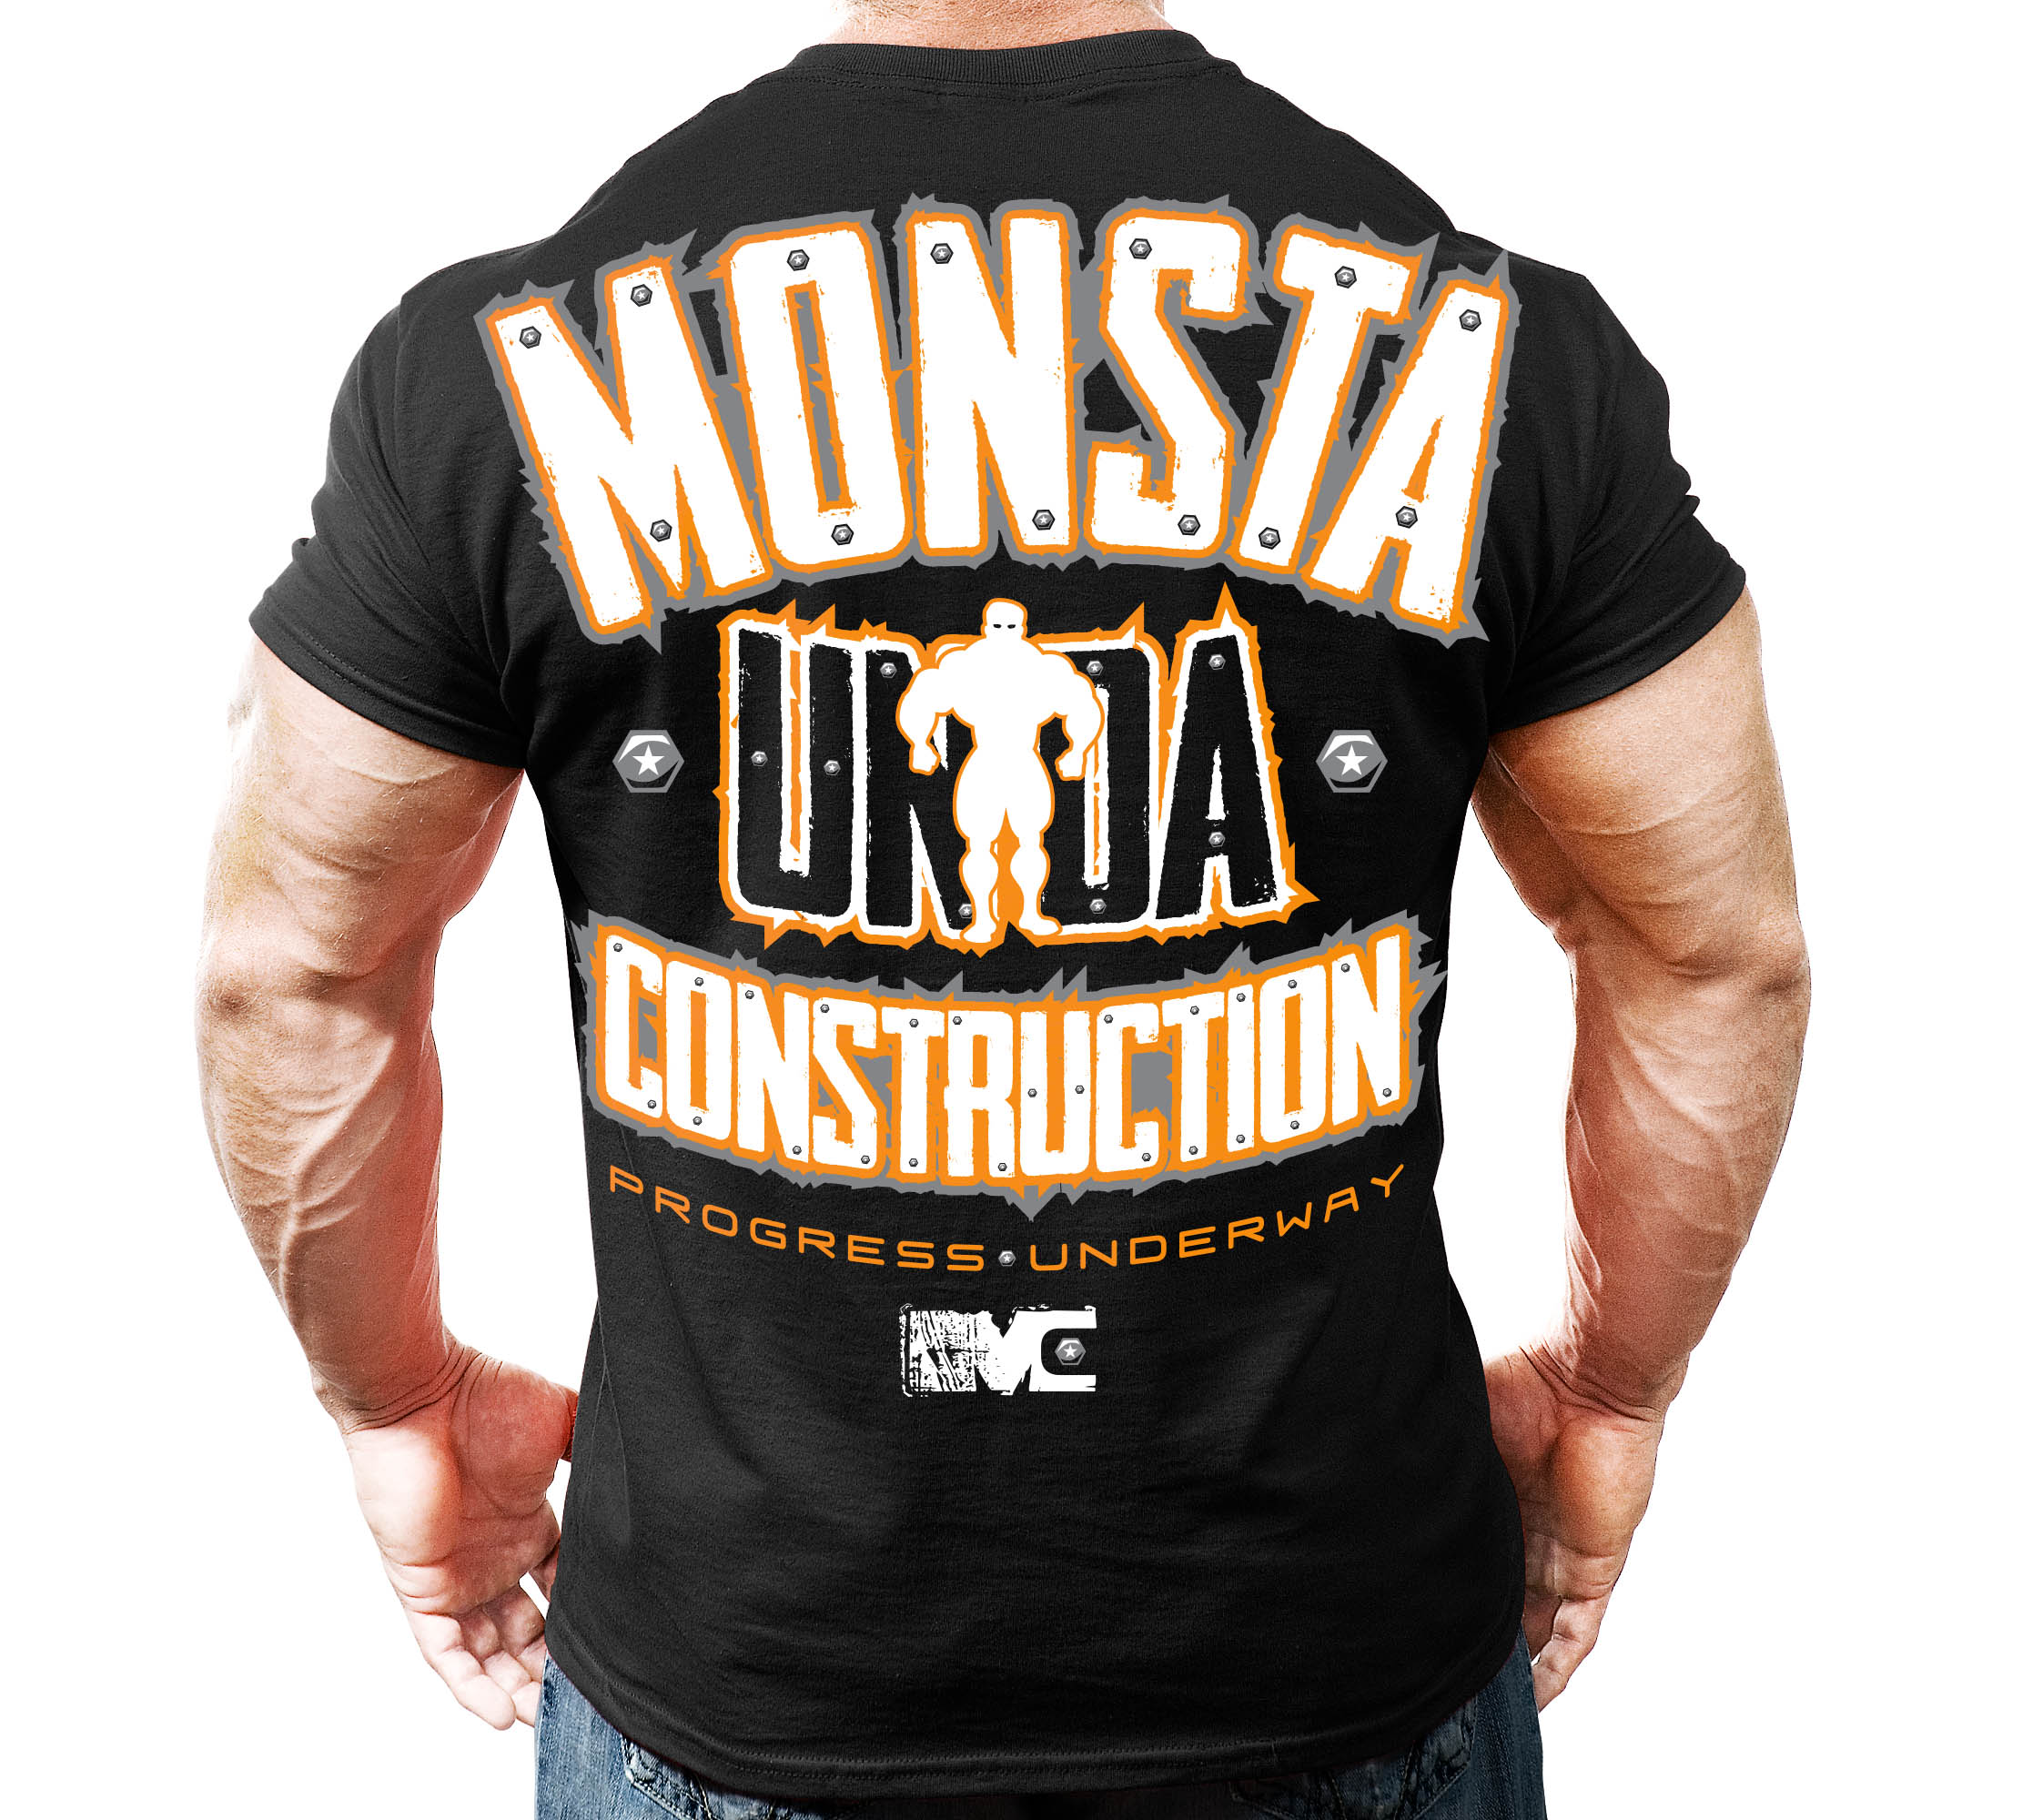 GymWear Graphic T s Archives Monsta Clothing